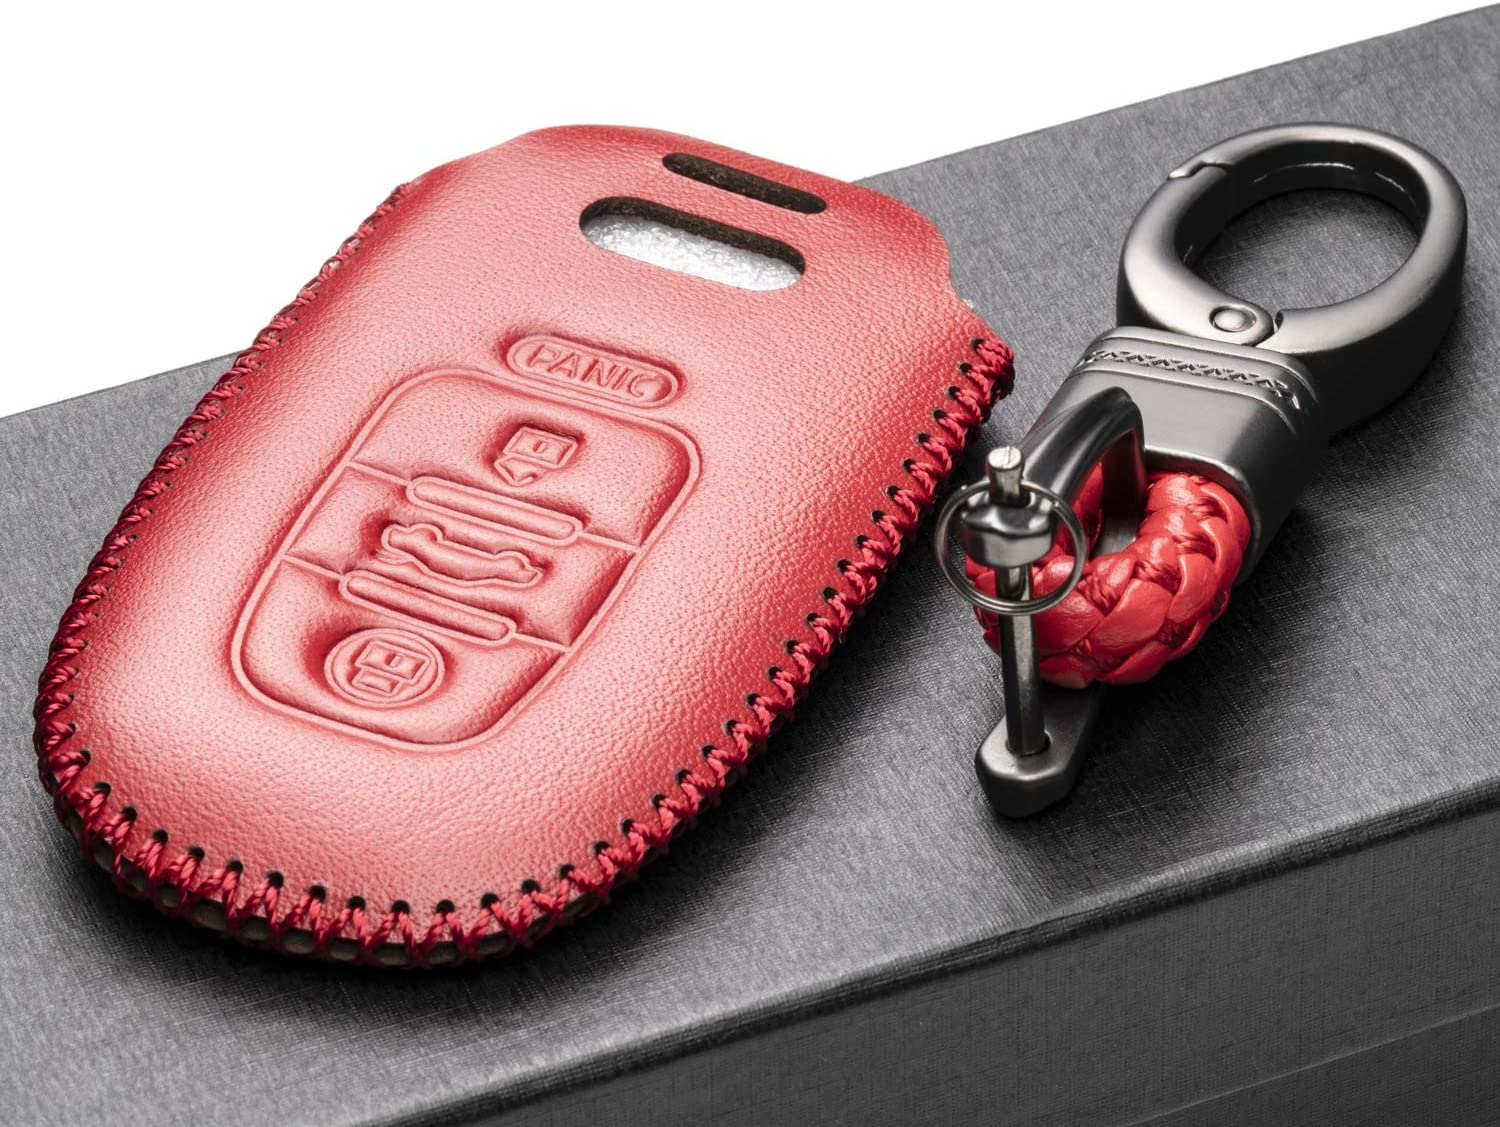 Vitodeco leather Keyless Entry Remote Control Smart Key Case Cover with a Key Chain for Audi A3 A5 A4 A7 RS S5 Q5 S7 A6 4 Buttons, Brown